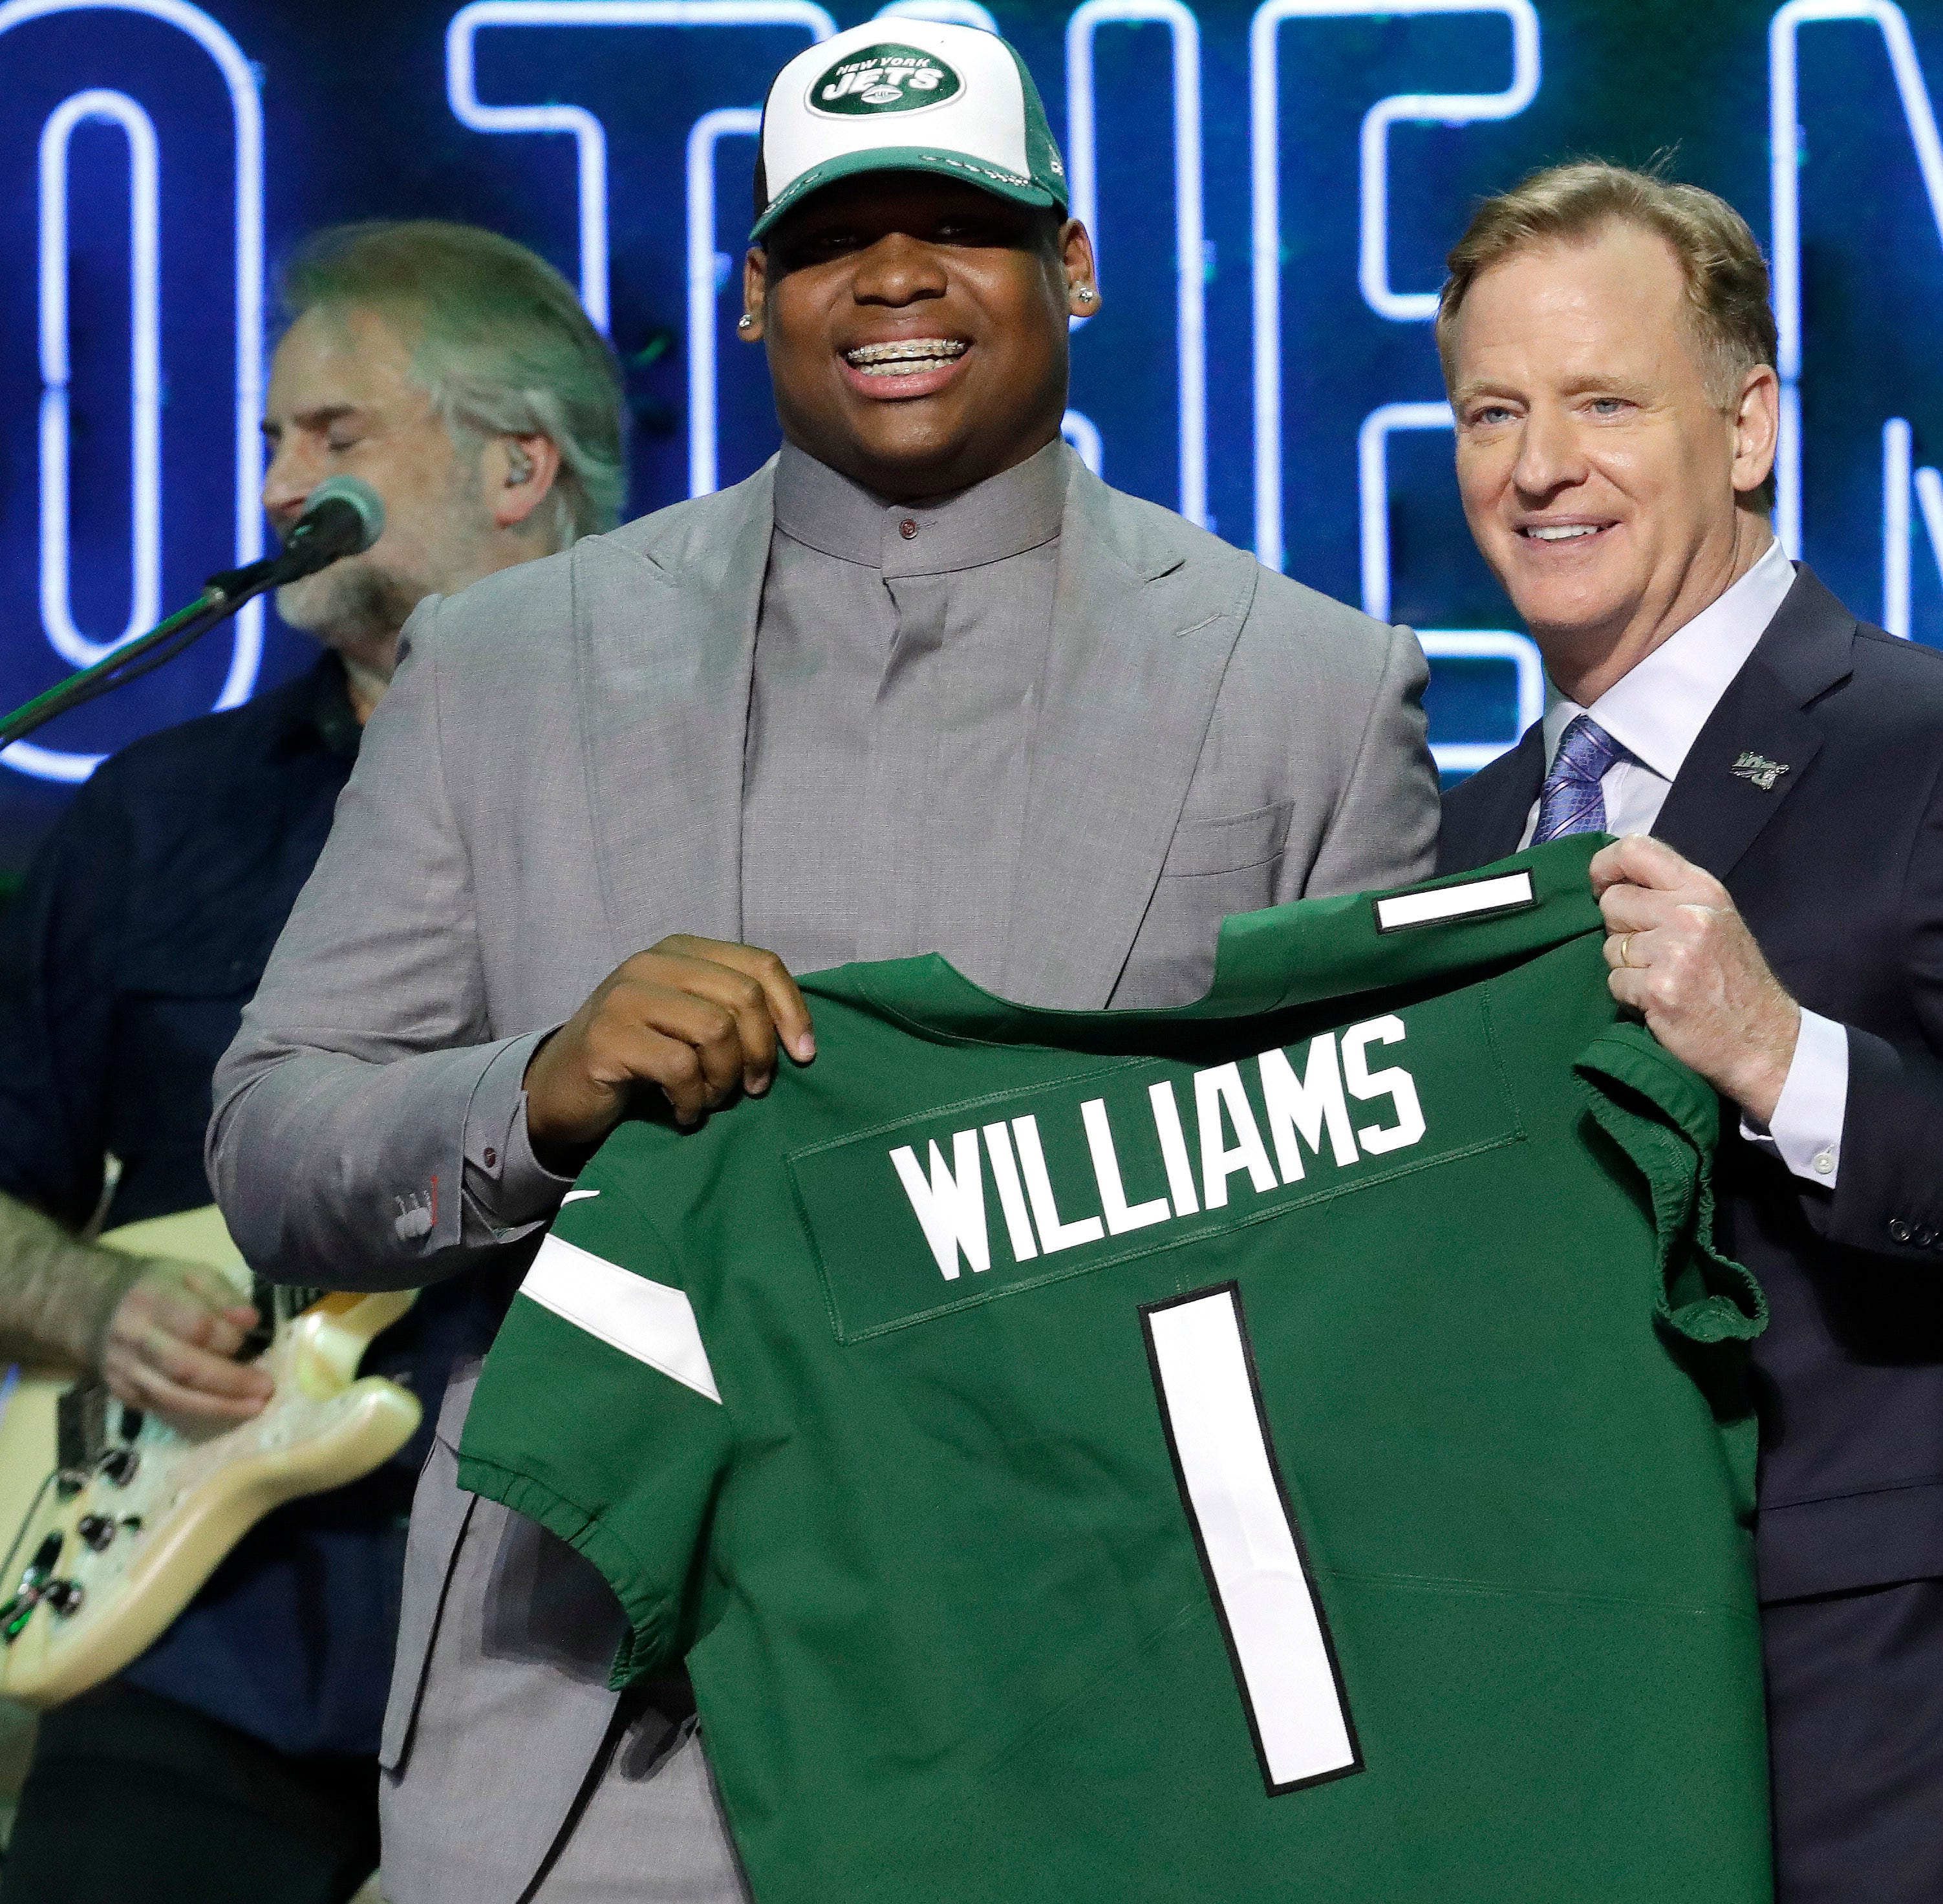 Jets take Quinnen Williams with the No. 3 pick in the NFL Draft